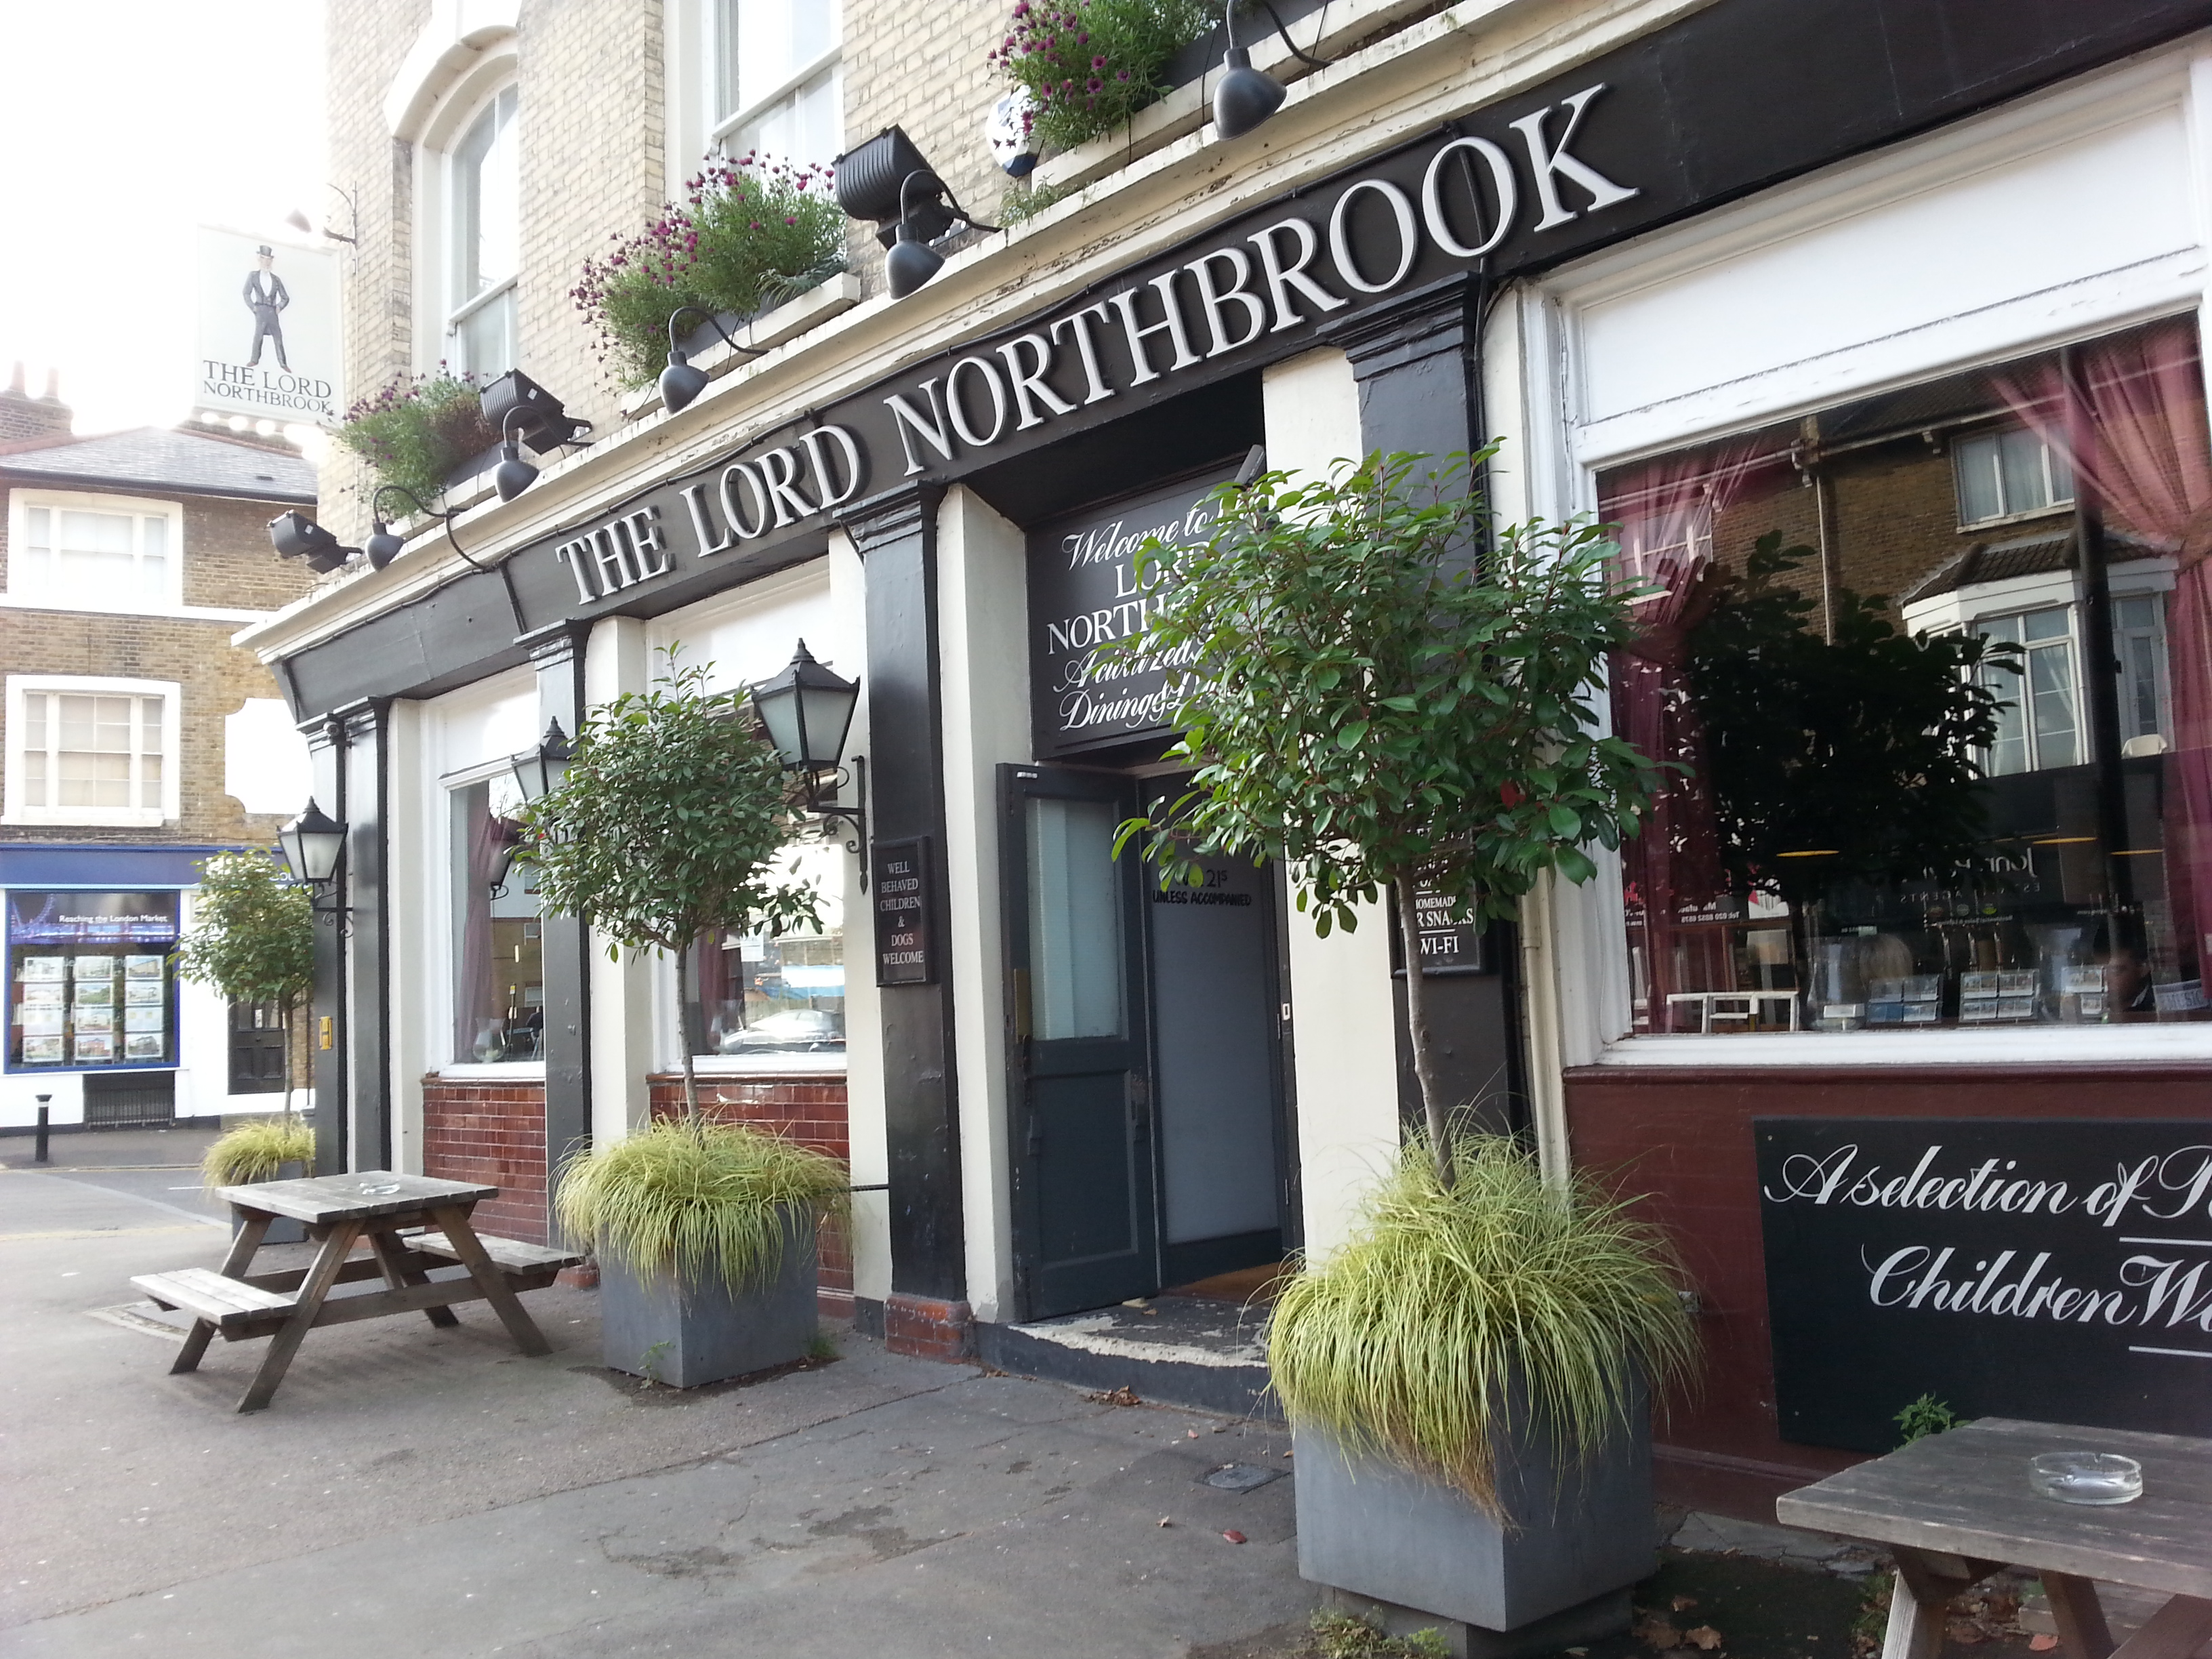 The Lord Northbrook pub quiz